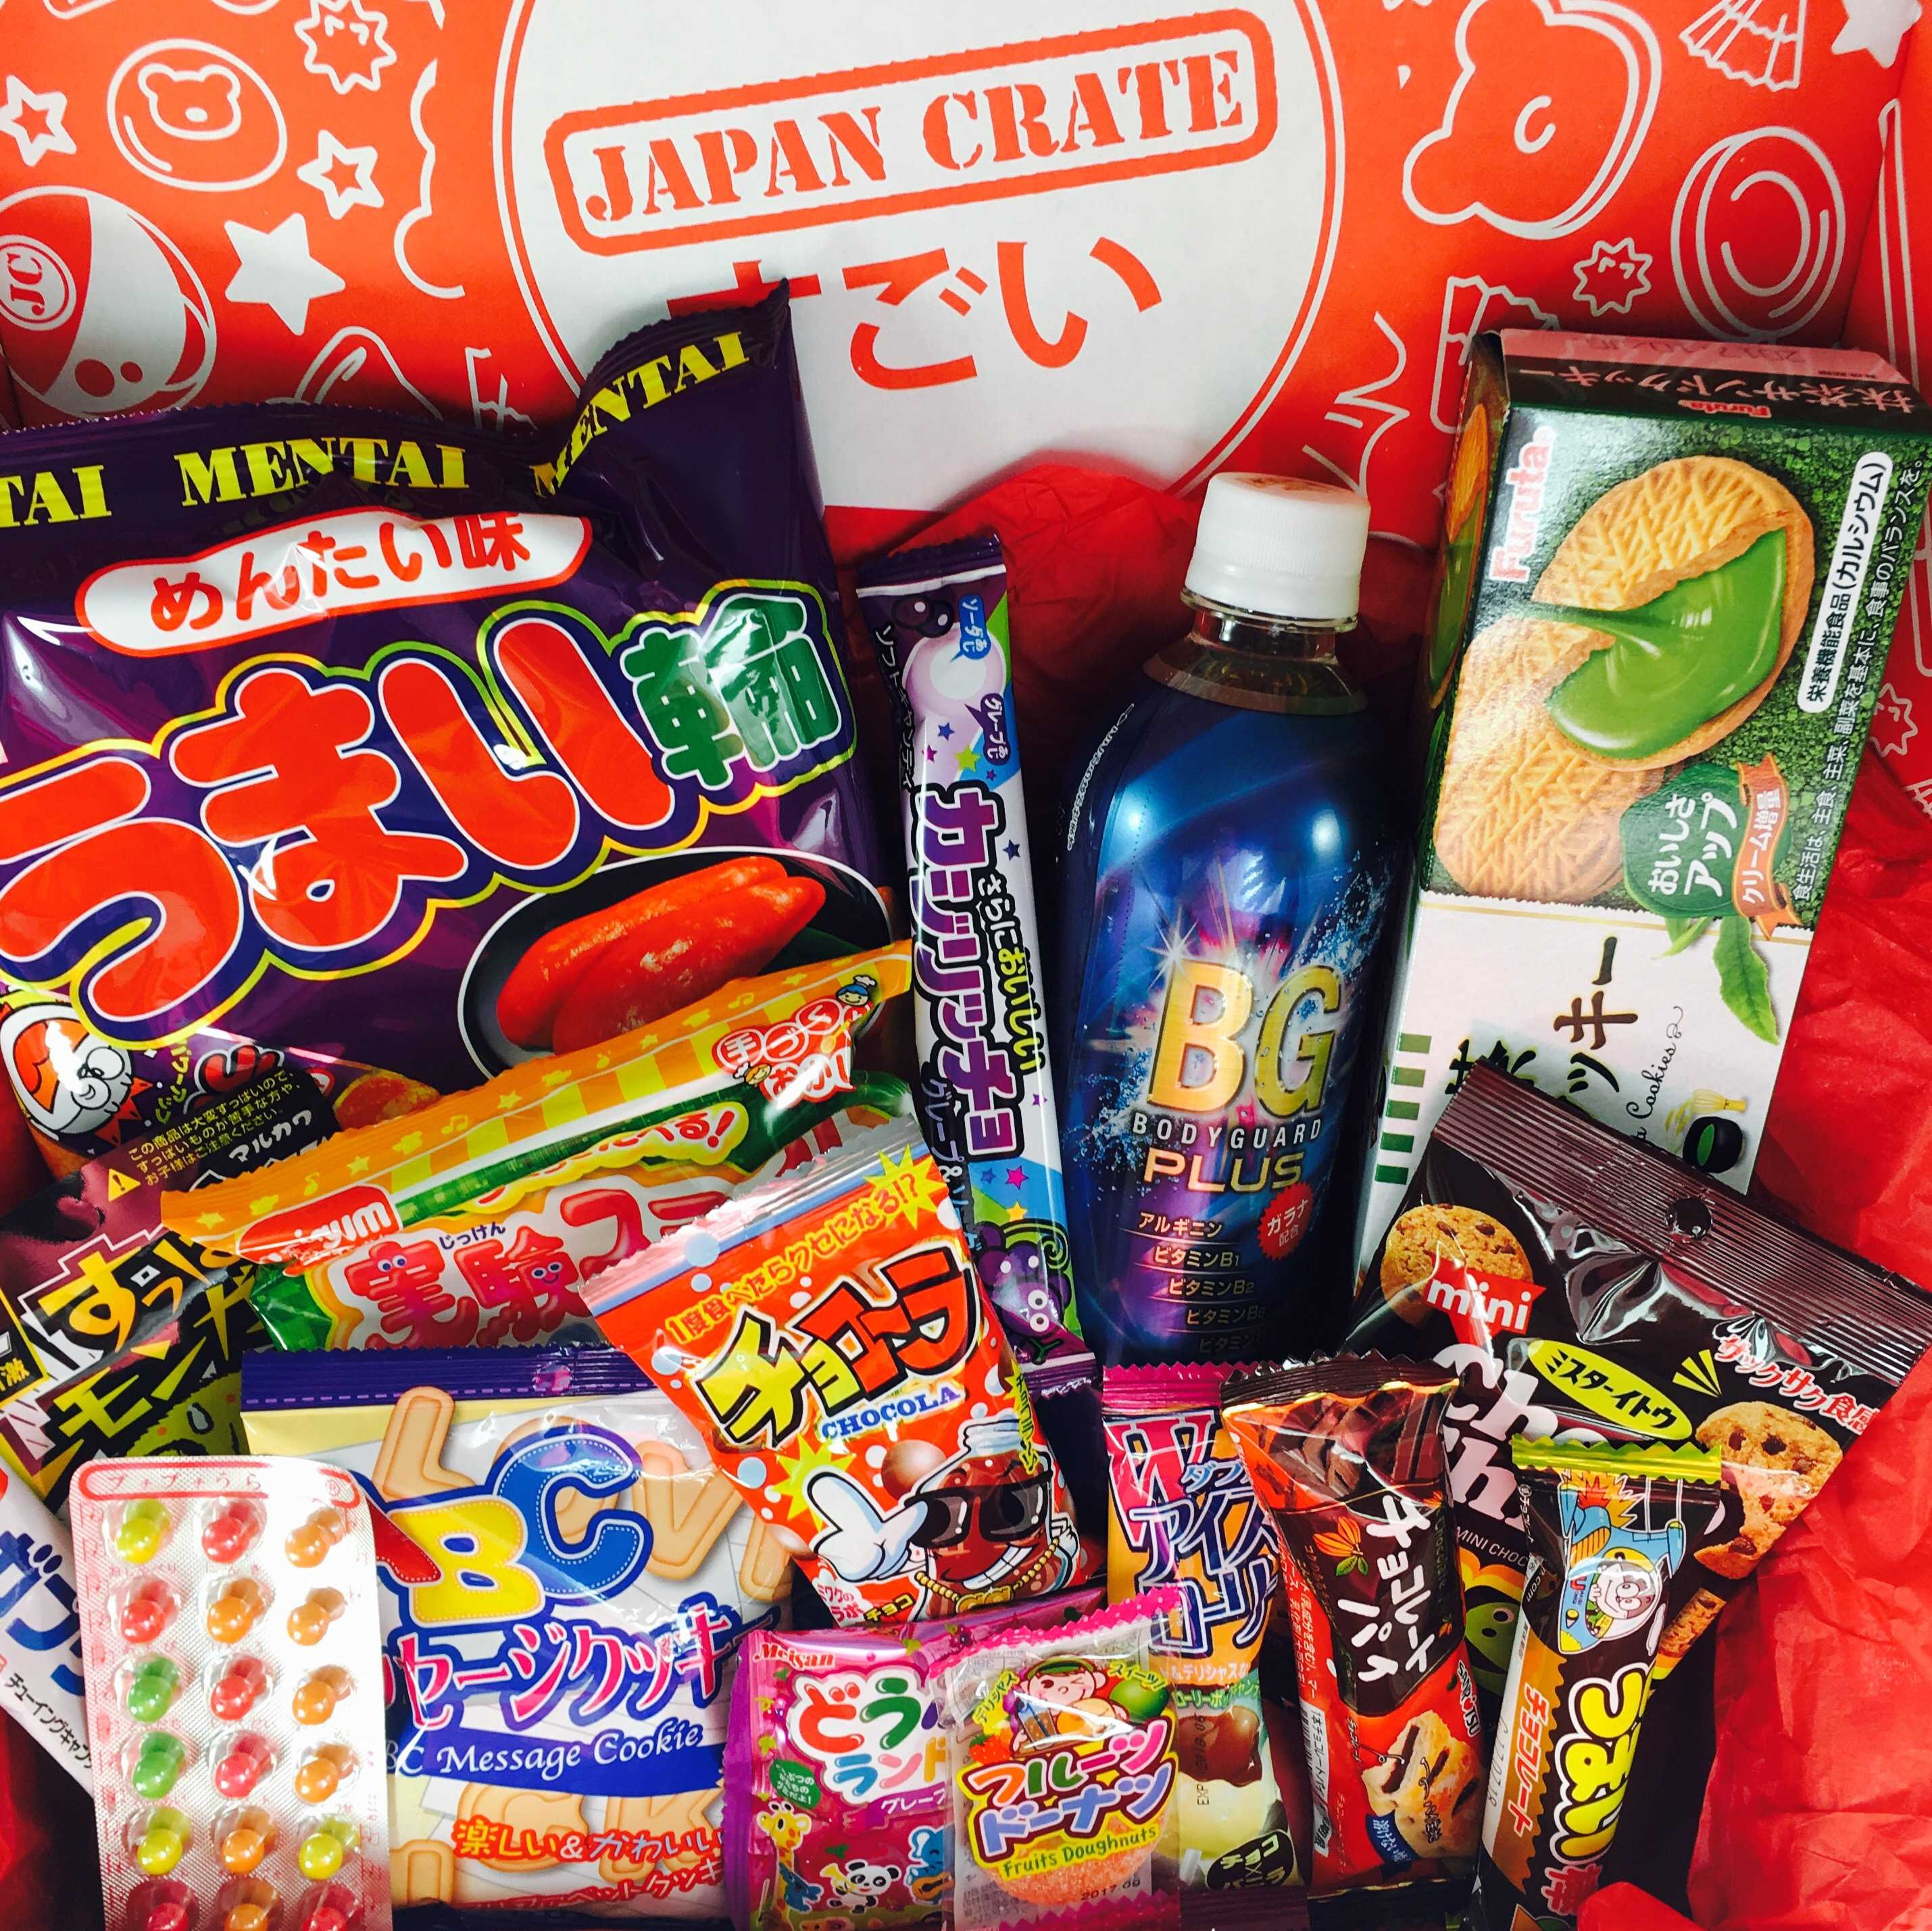 Japan Crate January 2017 Subscription Box Review + Coupon